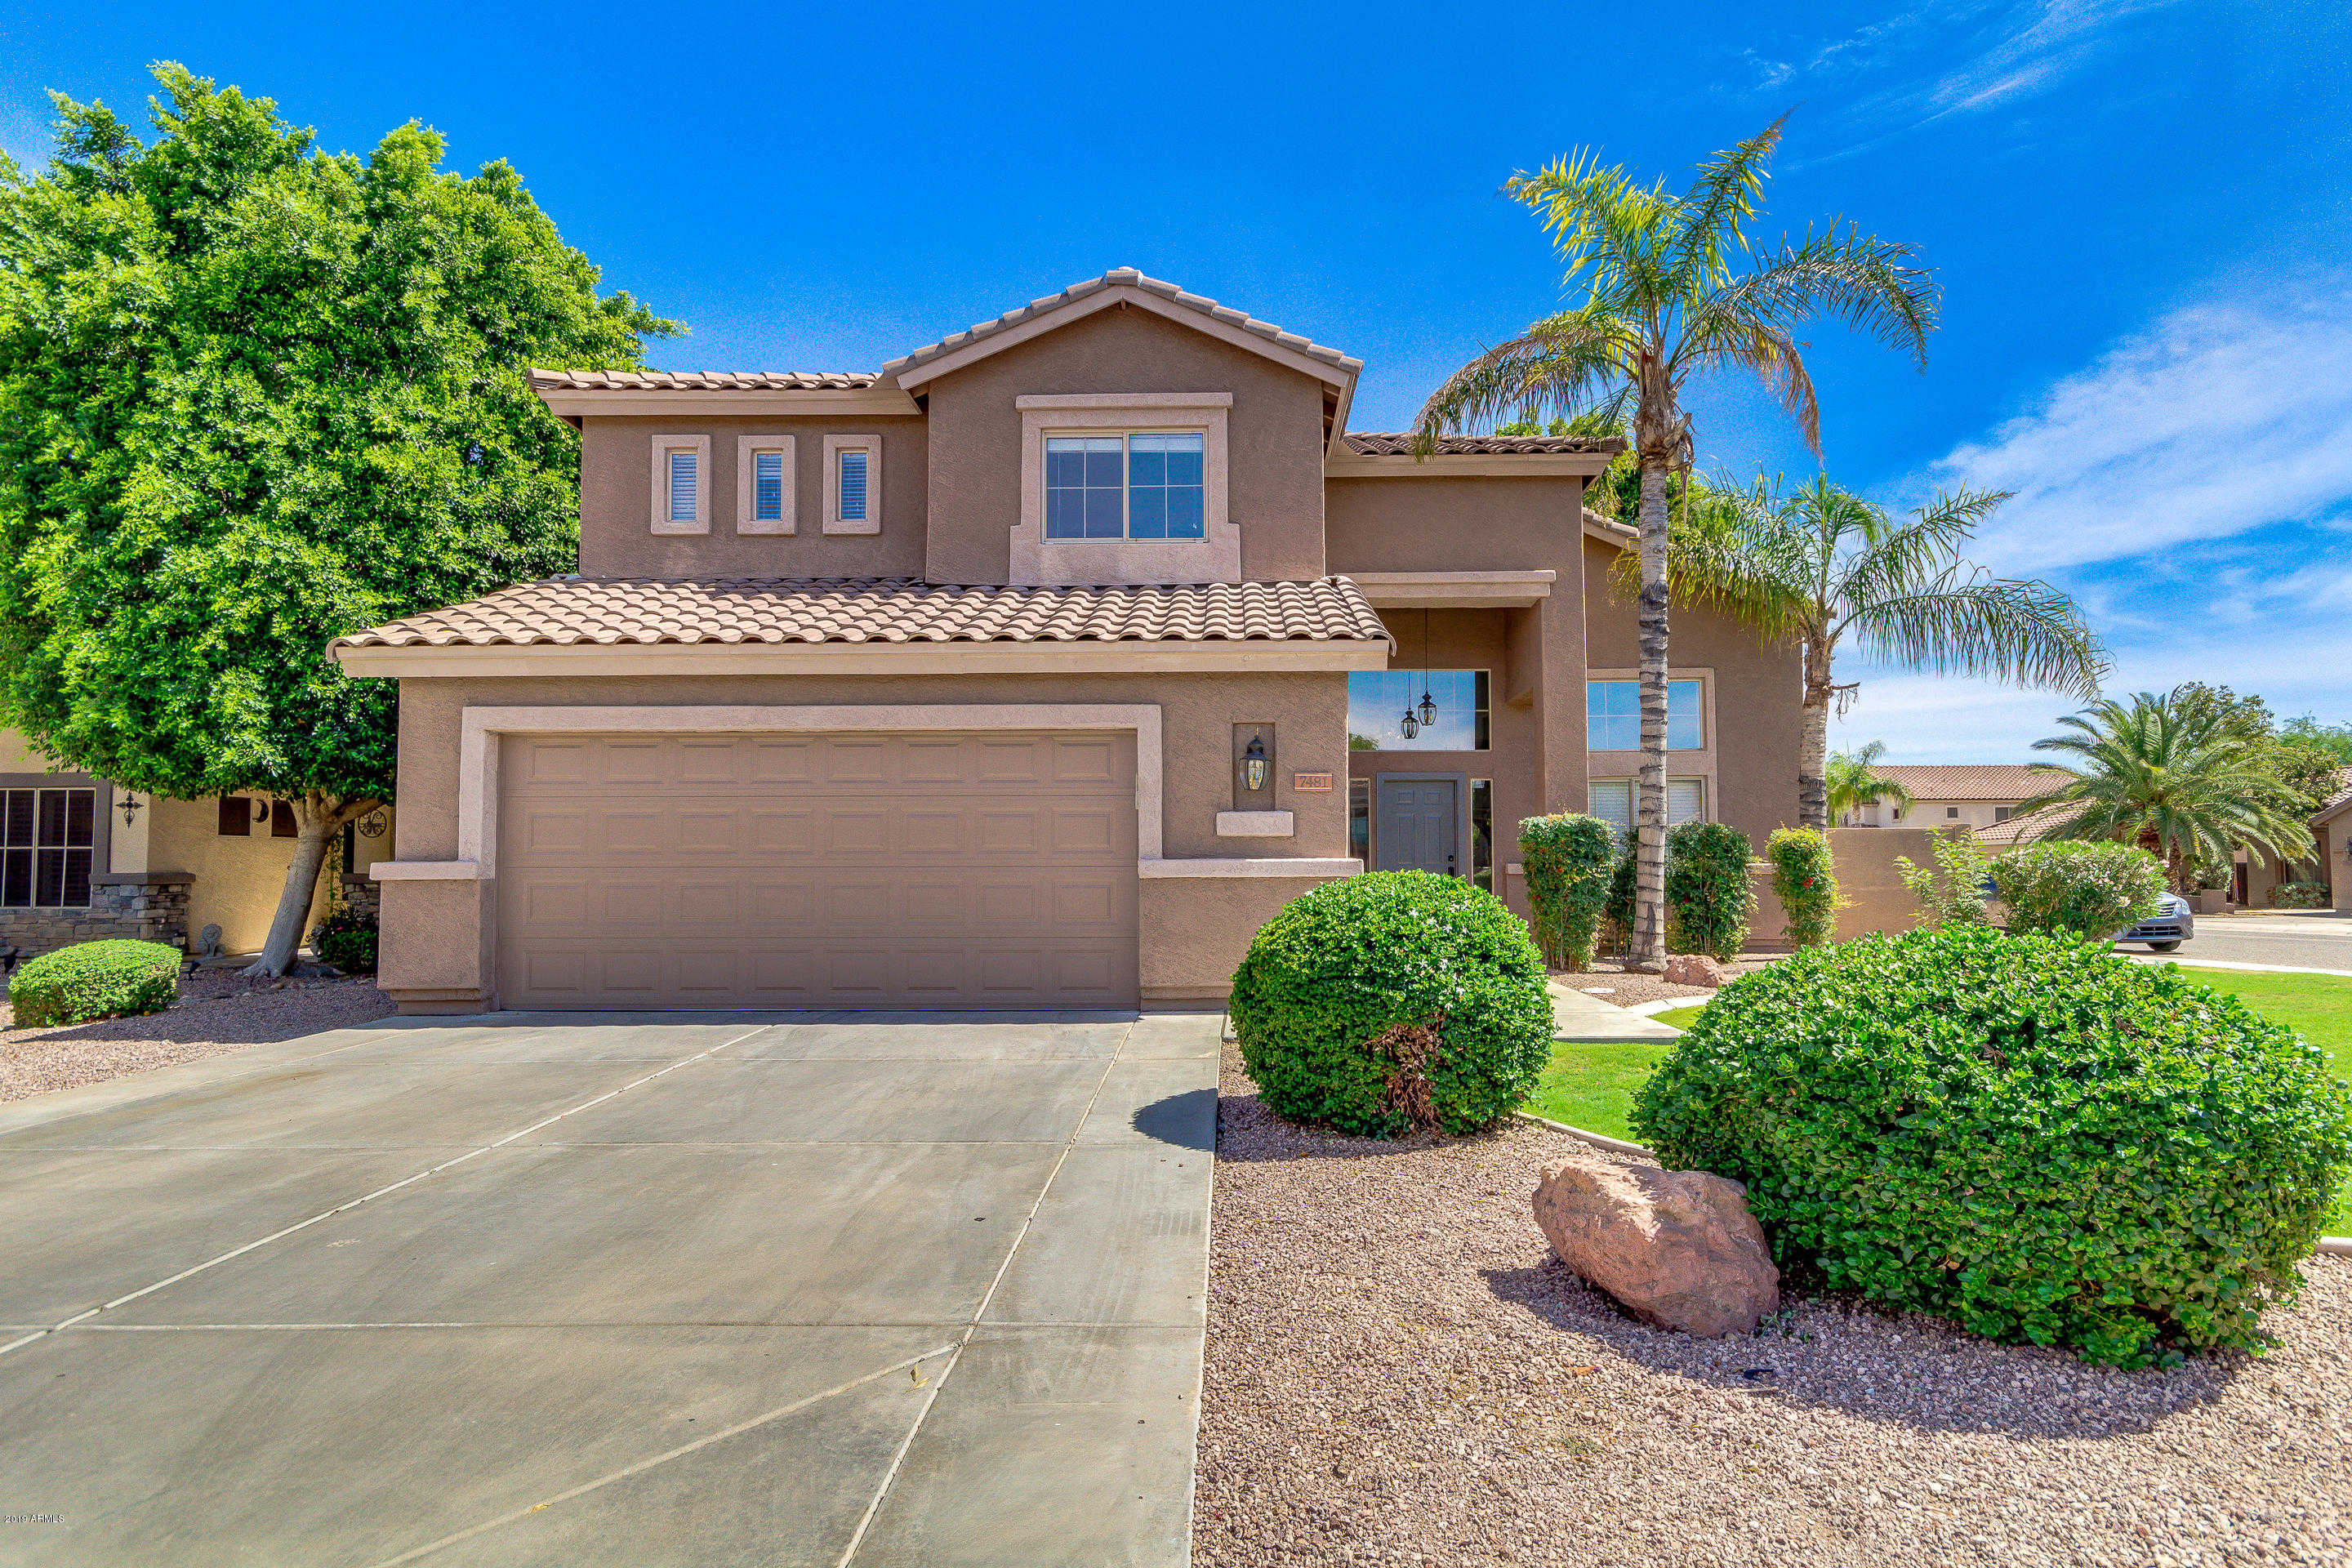 $385,000 - 5Br/3Ba - Home for Sale in Sienna 2, Glendale